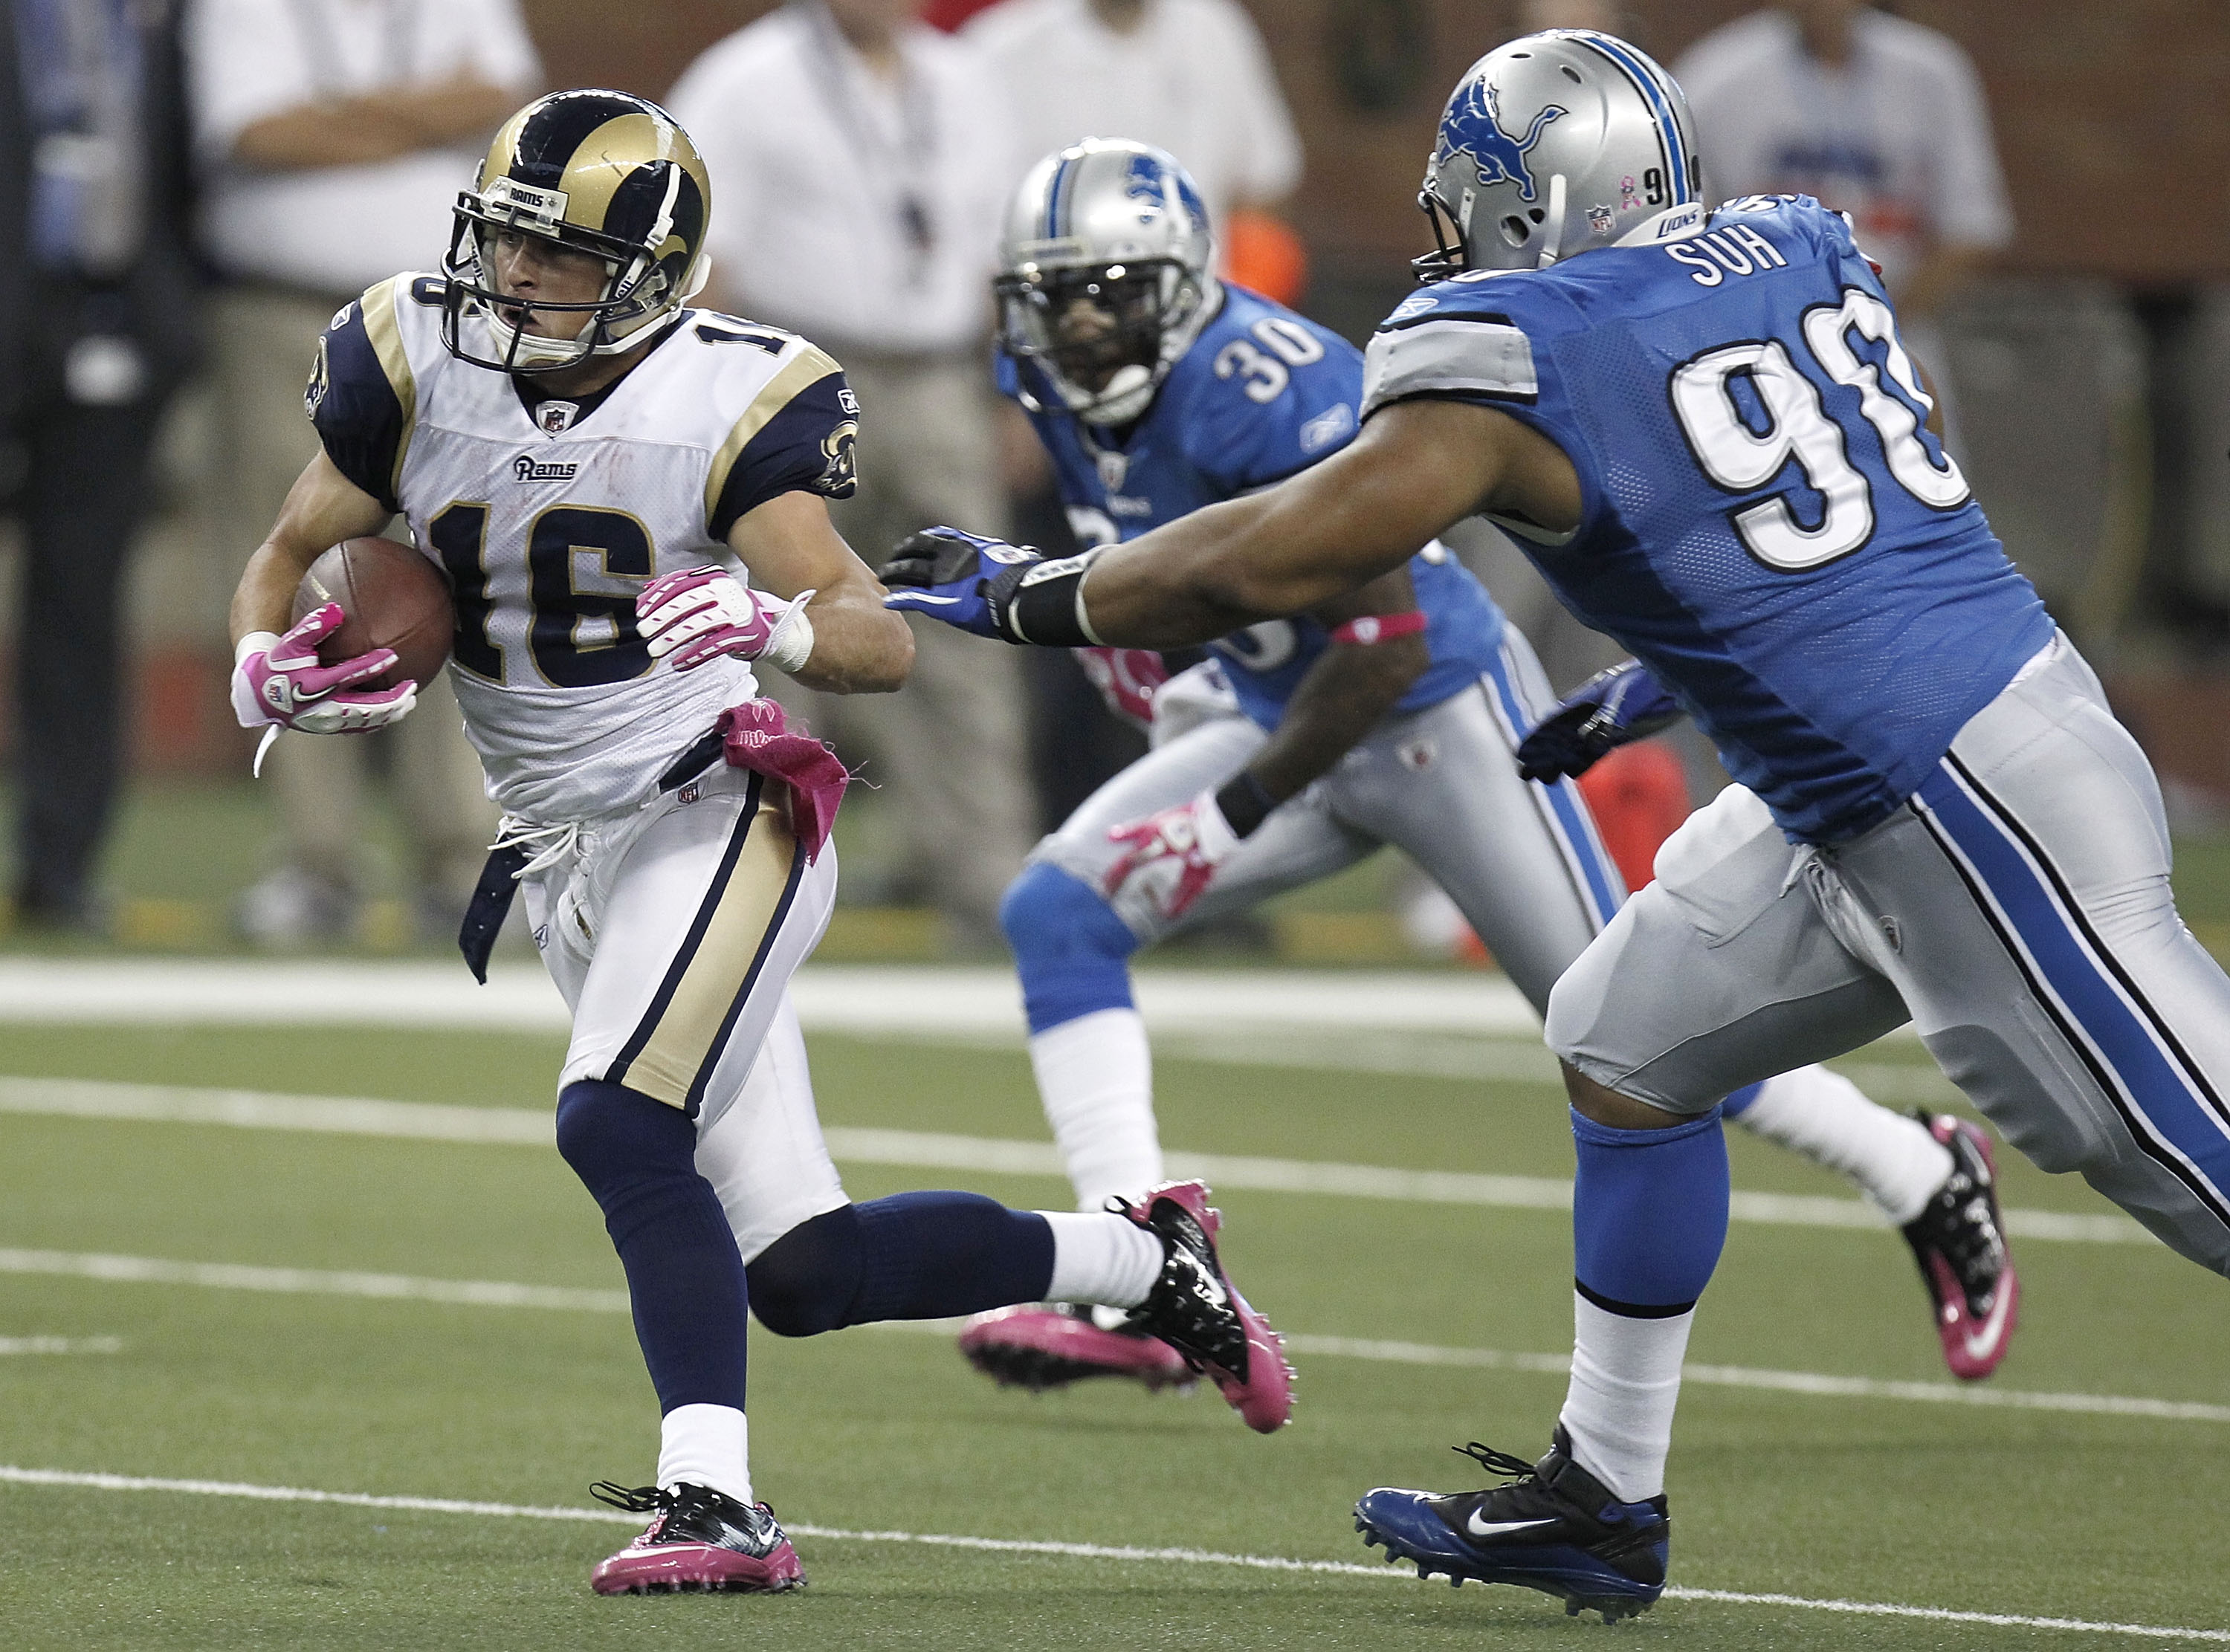 DETROIT - OCTOBER 10: Danny Amendola #16 of the St. Louis Rams tries to outrun the tackle of Ndamukong Suh #90 of the Detroit Lions on October 10, 2010 at Ford Field in Detroit, Michigan.  (Photo by Gregory Shamus/Getty Images)